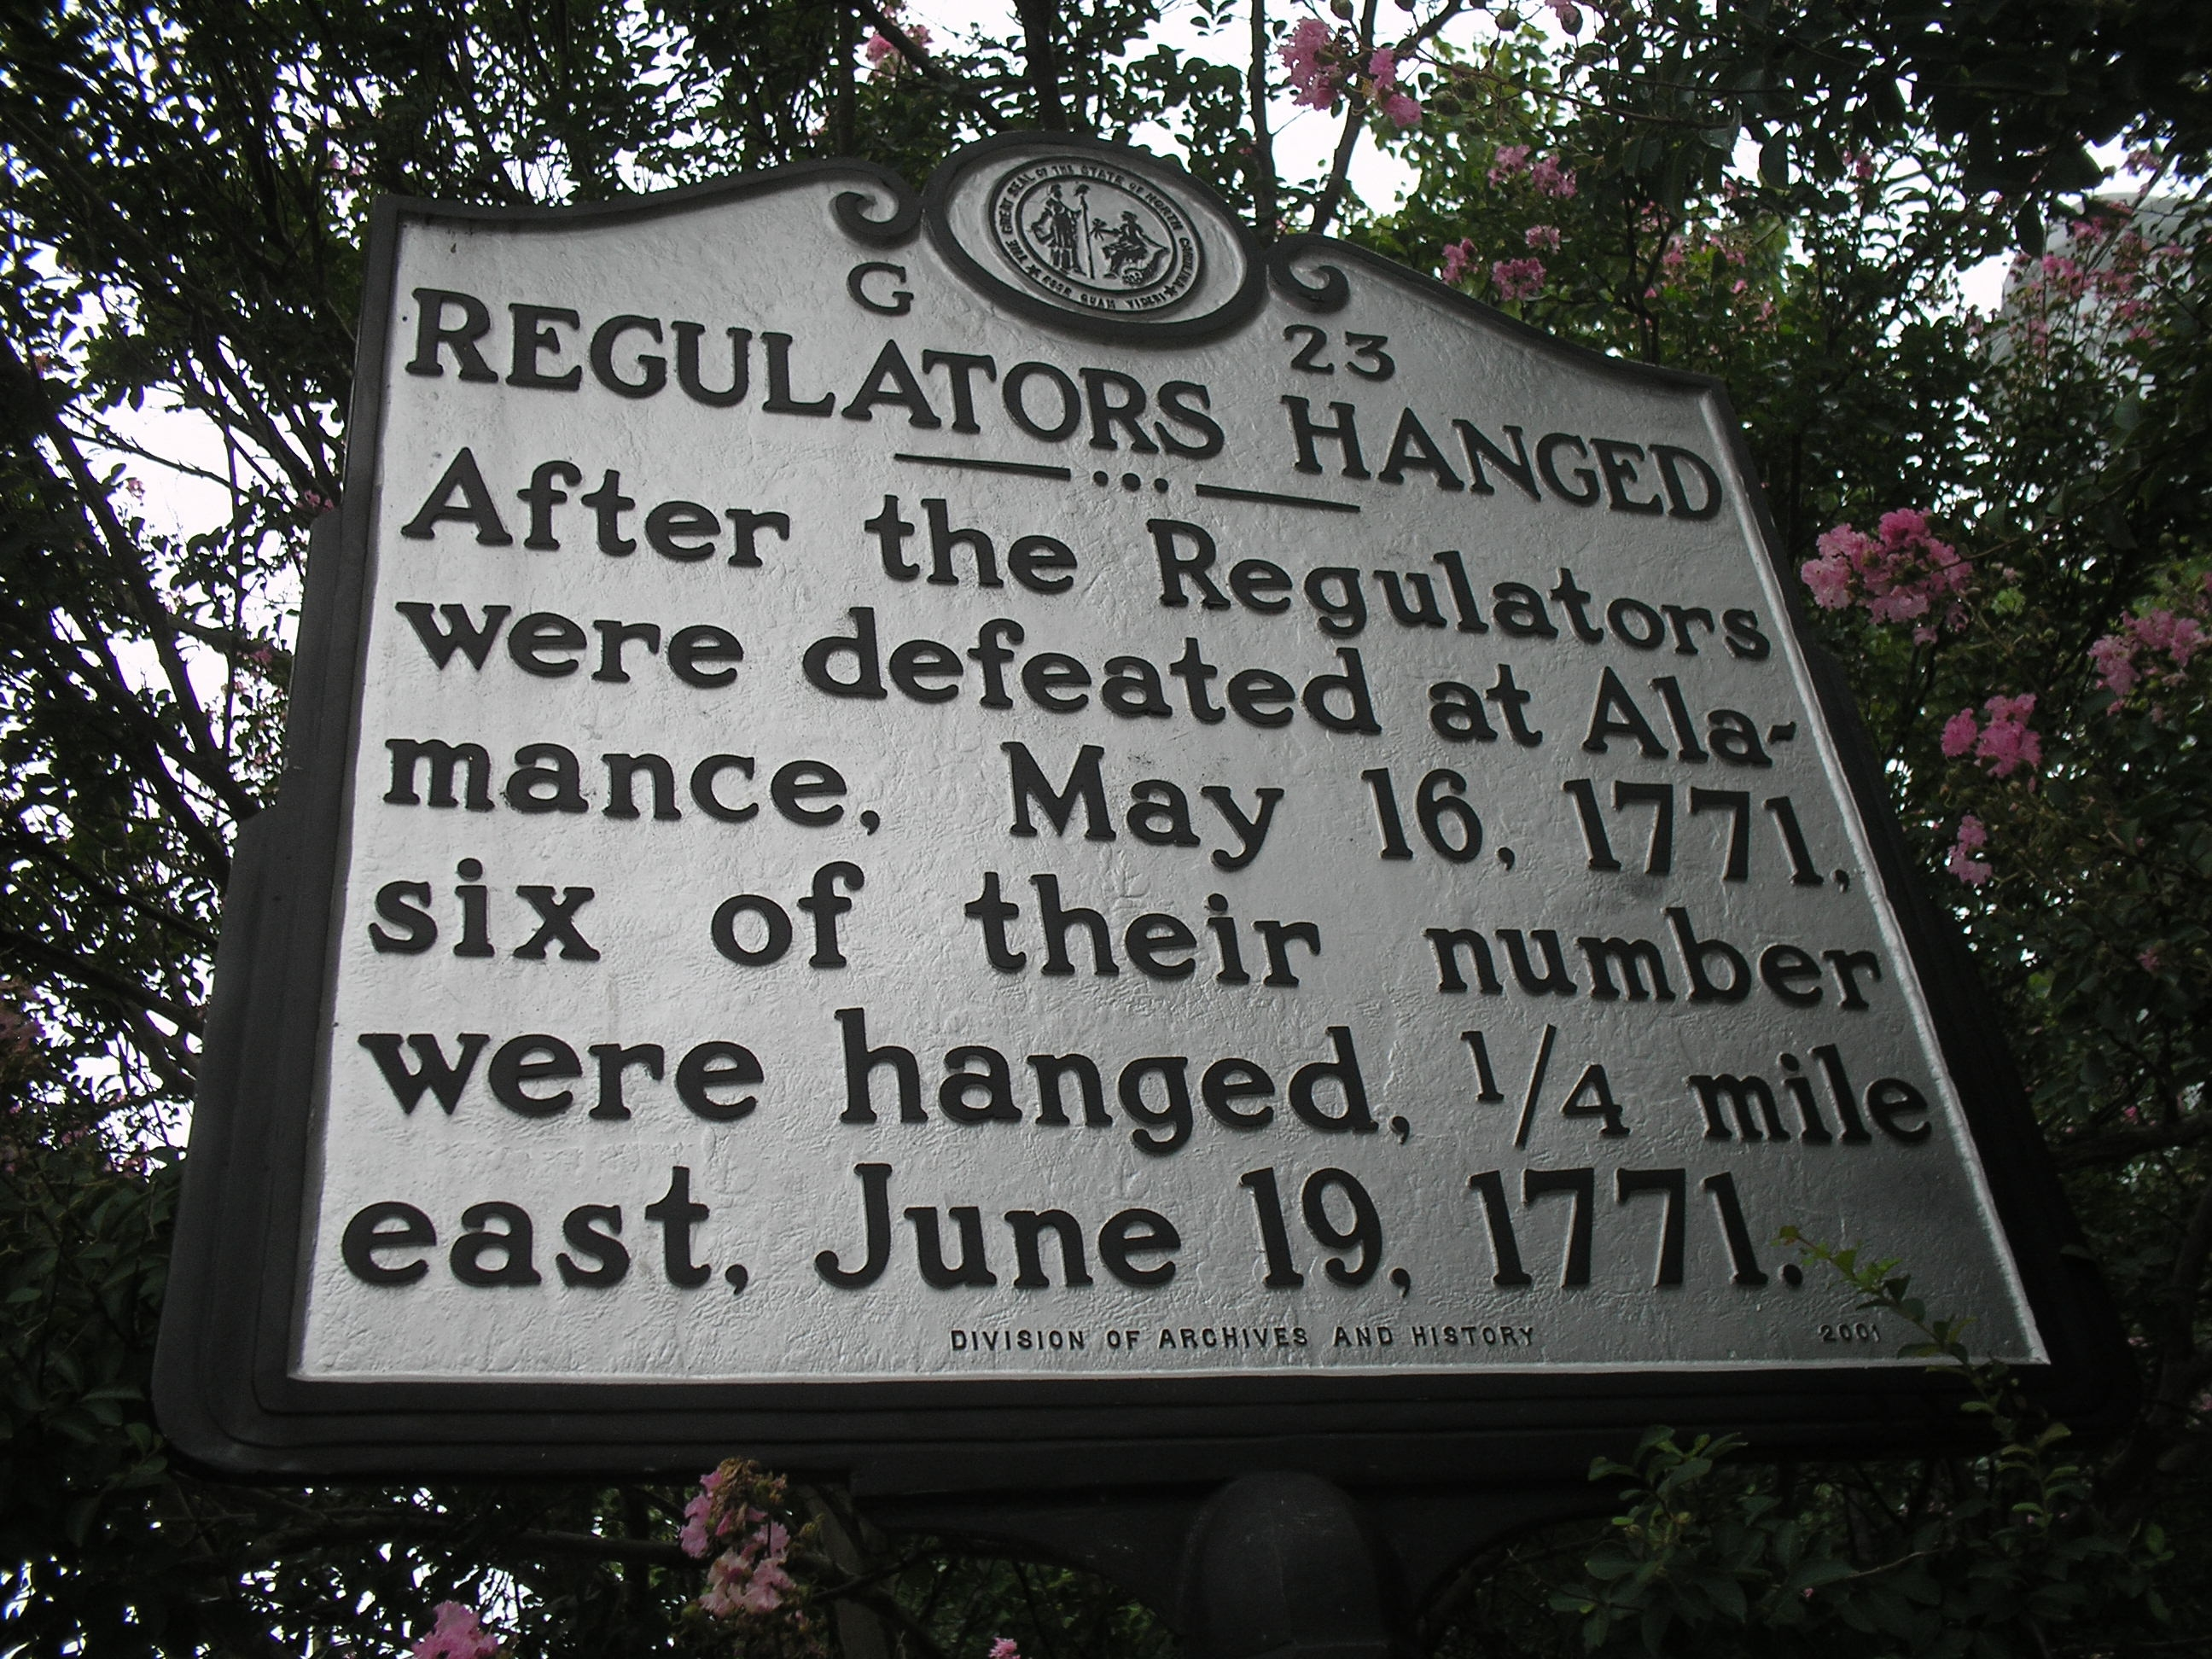 Regulators Hanged Marker